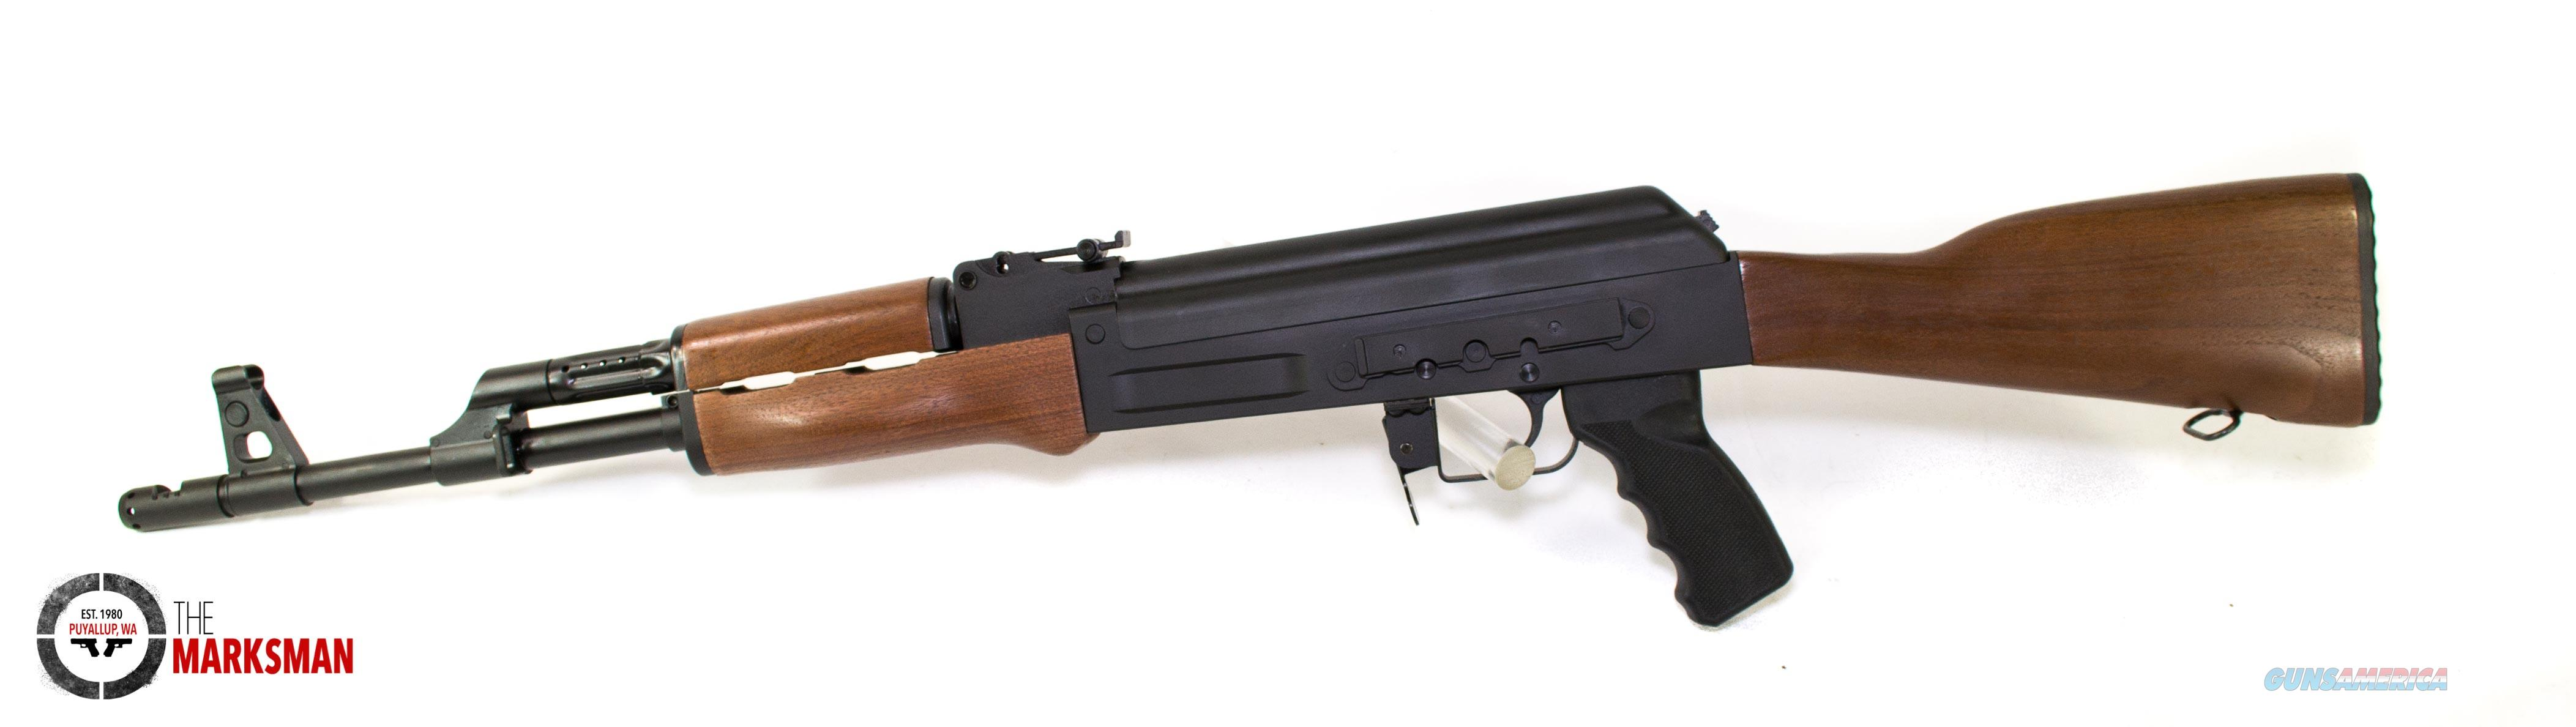 Century Arms C39 V2 Milled AK-47, 7.62 x 39mm NEW  Guns > Rifles > Century International Arms - Rifles > Rifles